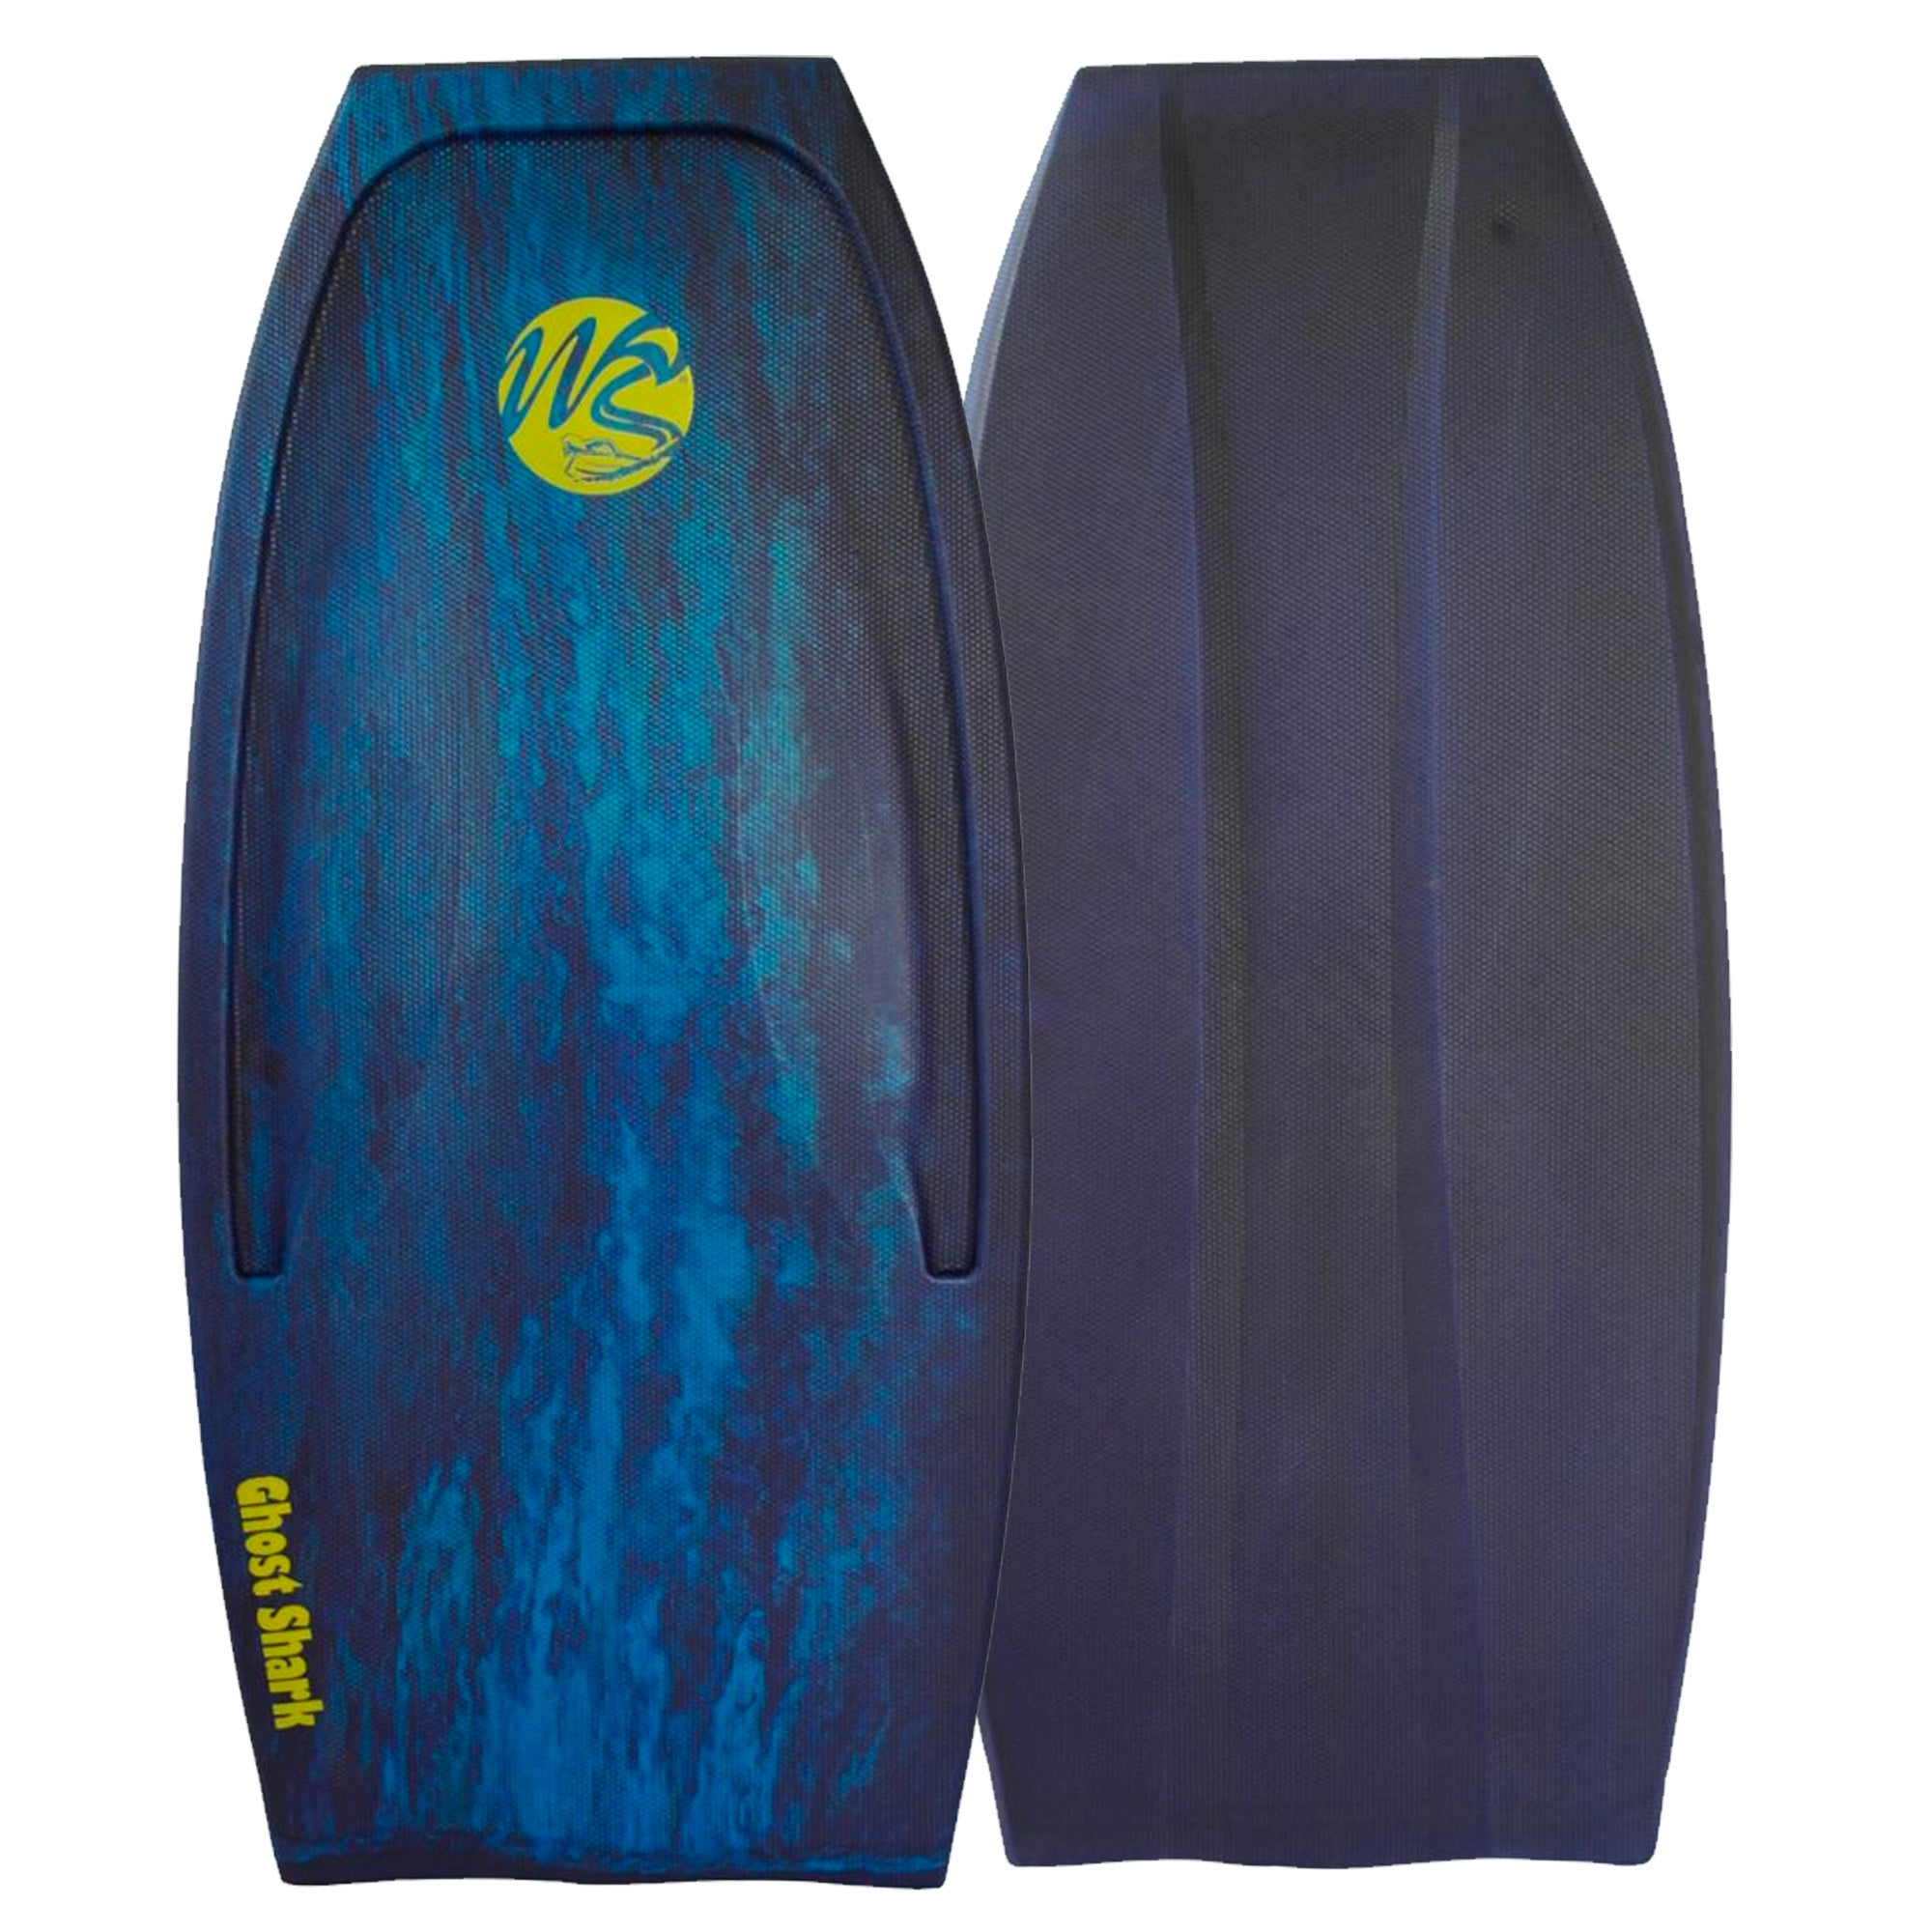 "Wave Skater Pro Ghost Shark 48"" Bodyboard - Aqua/Navy"